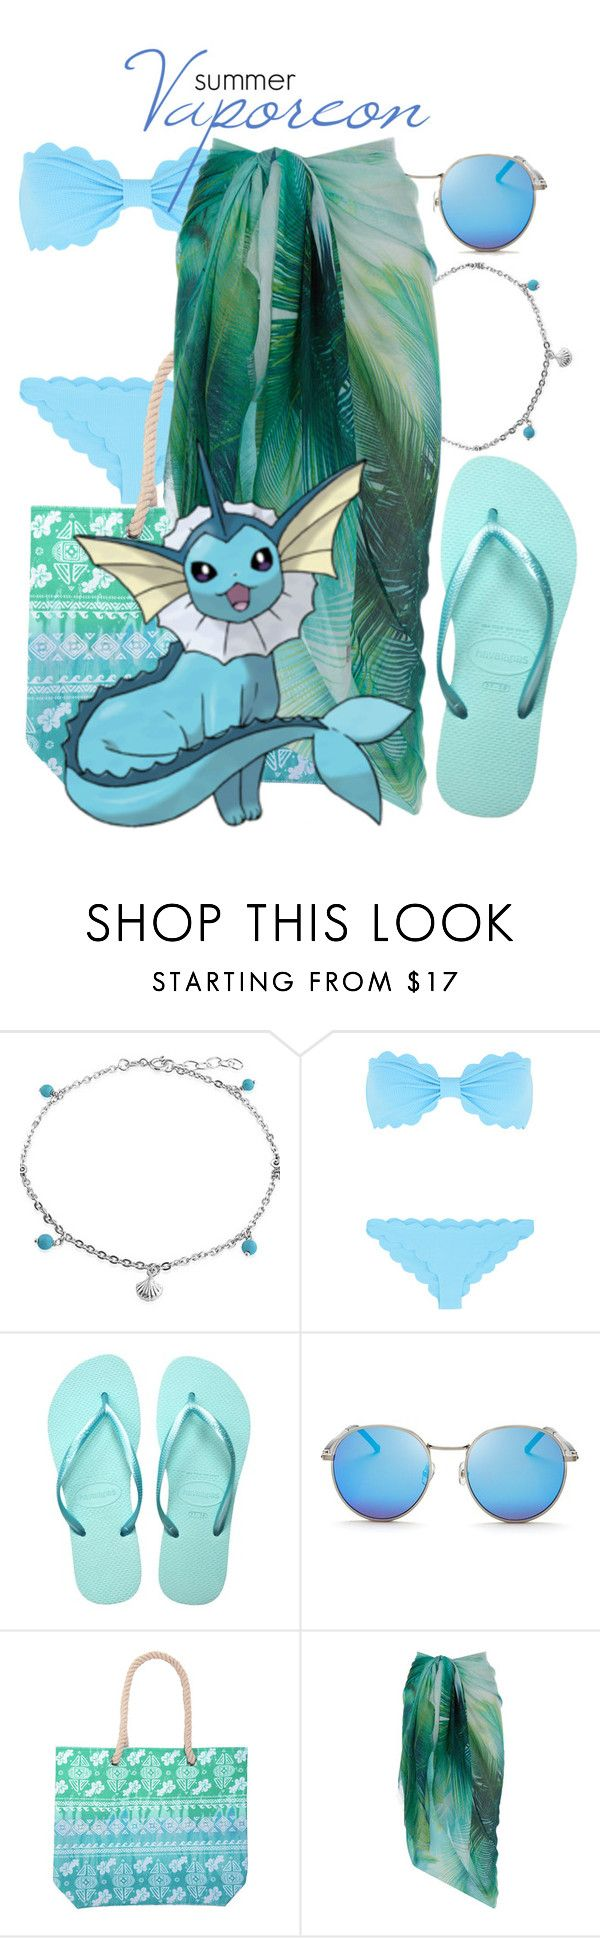 """Pokemon Beach: Vaporeon"" by freezespell ❤ liked on Polyvore featuring Bling Jewelry, Marysia Swim, Havaianas, Wildfox and Accessorize"